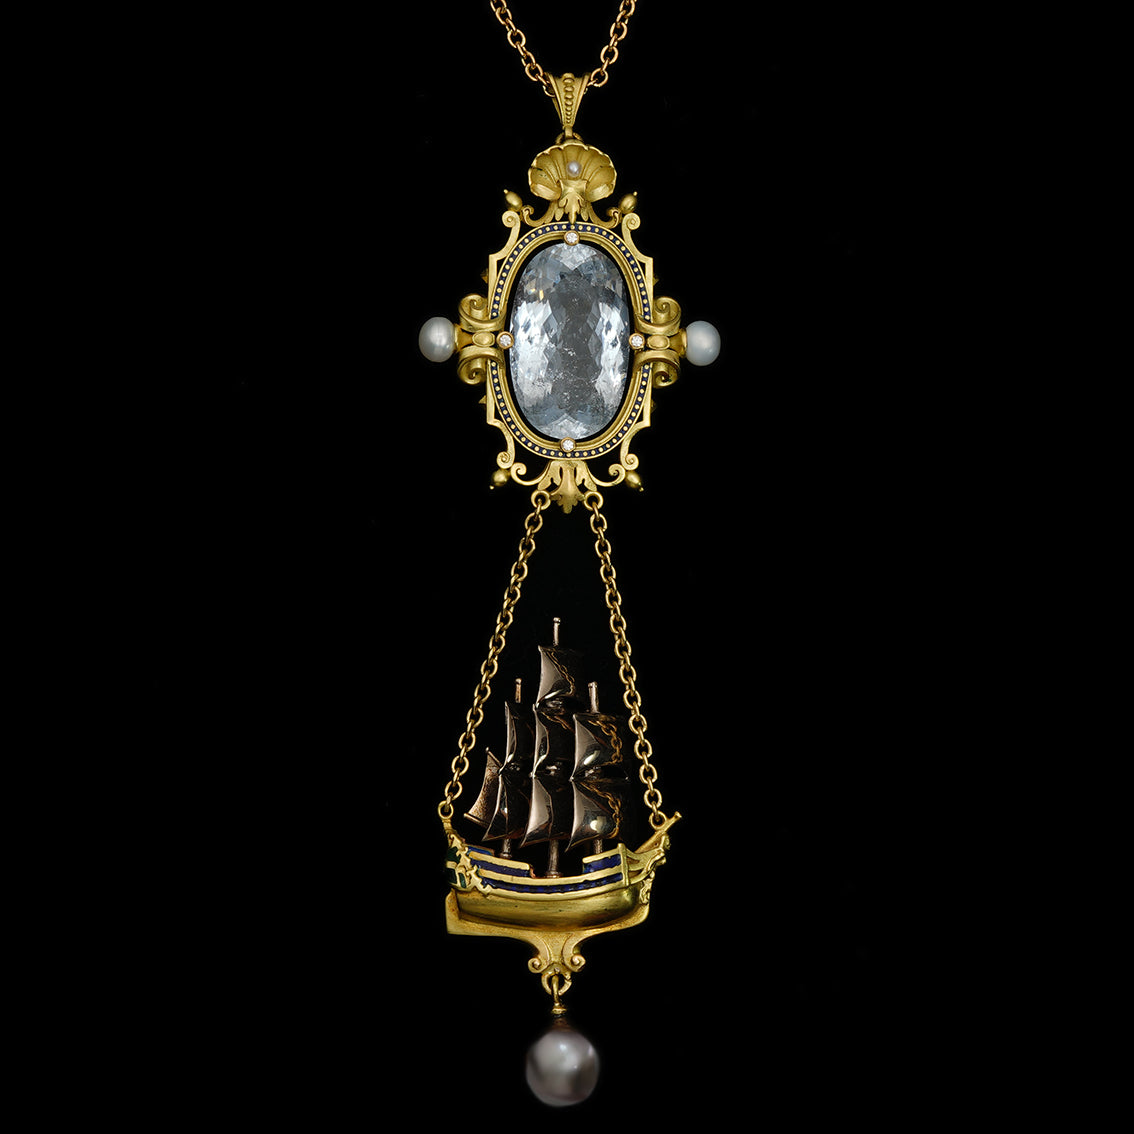 ARCHIMEDES' MIRROR PENDANT NECKLACE